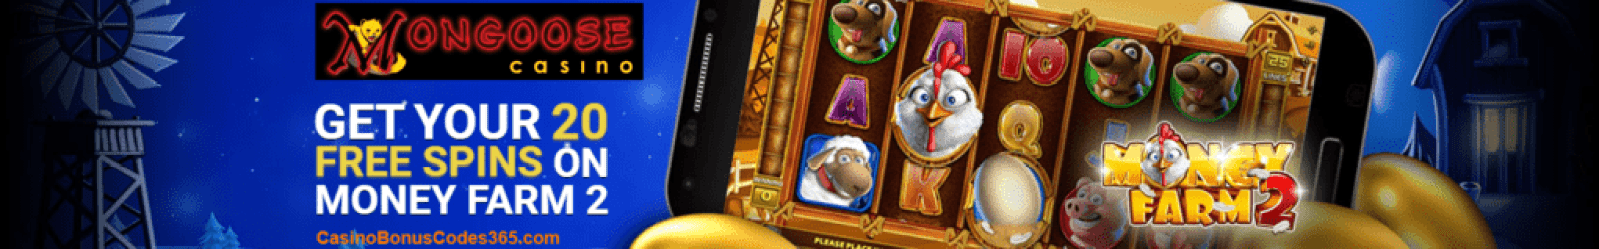 Mongoose Casino 20 FREE Spins GameArt Money Farm 2